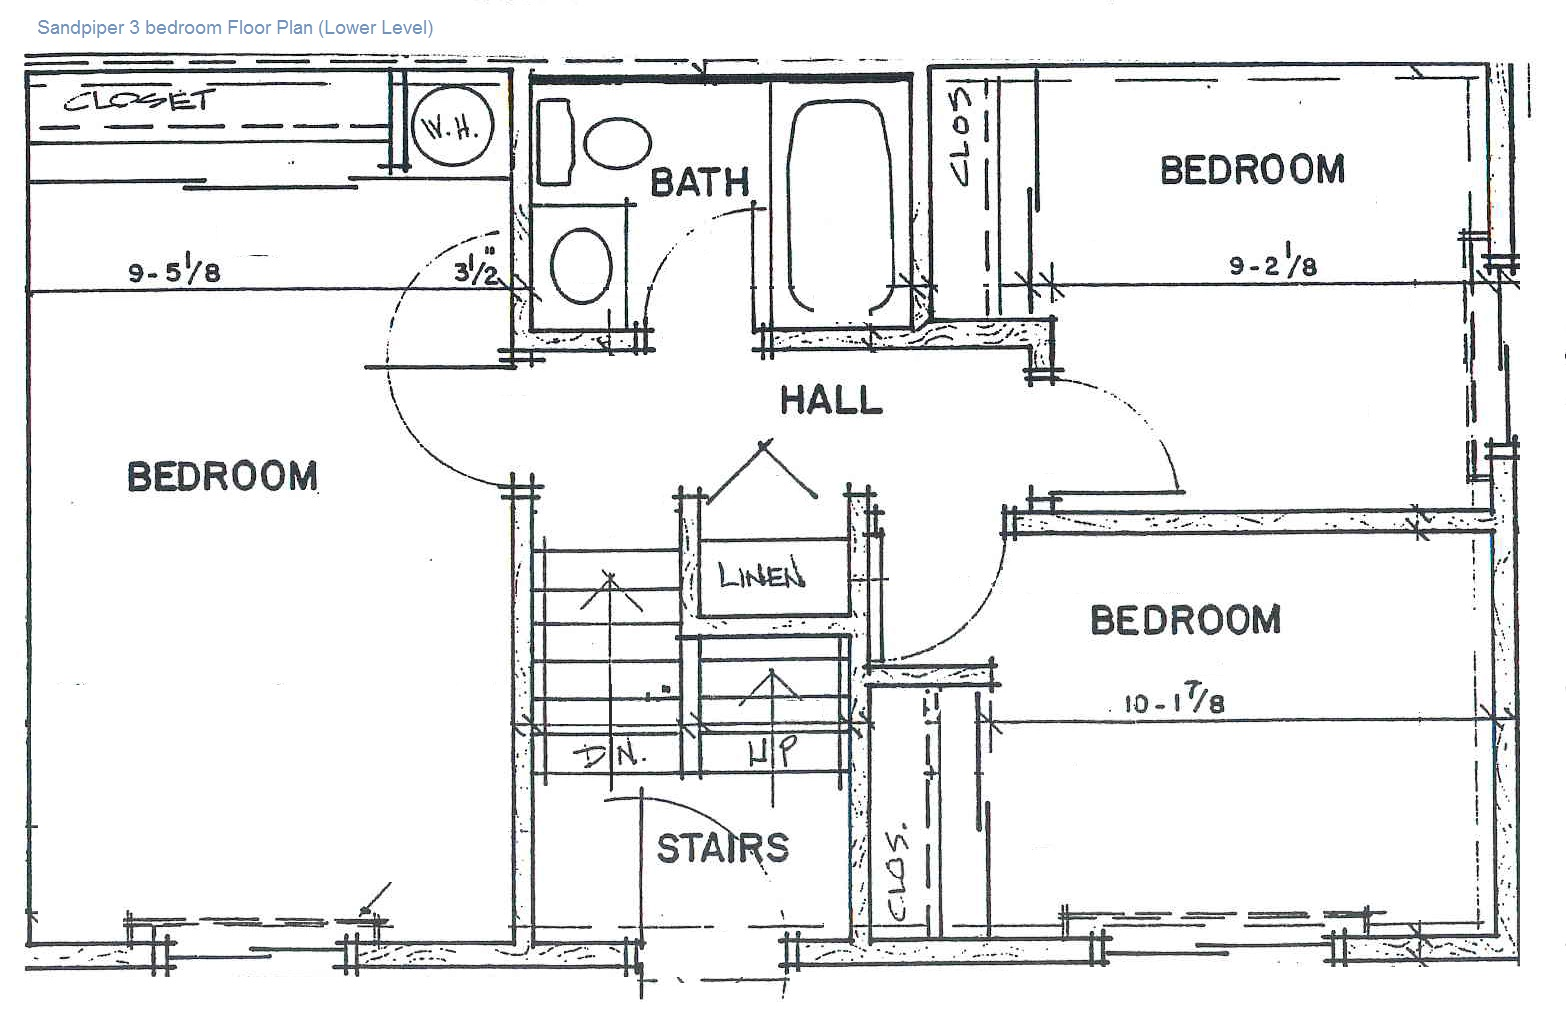 3 Bedroom: Lower Level